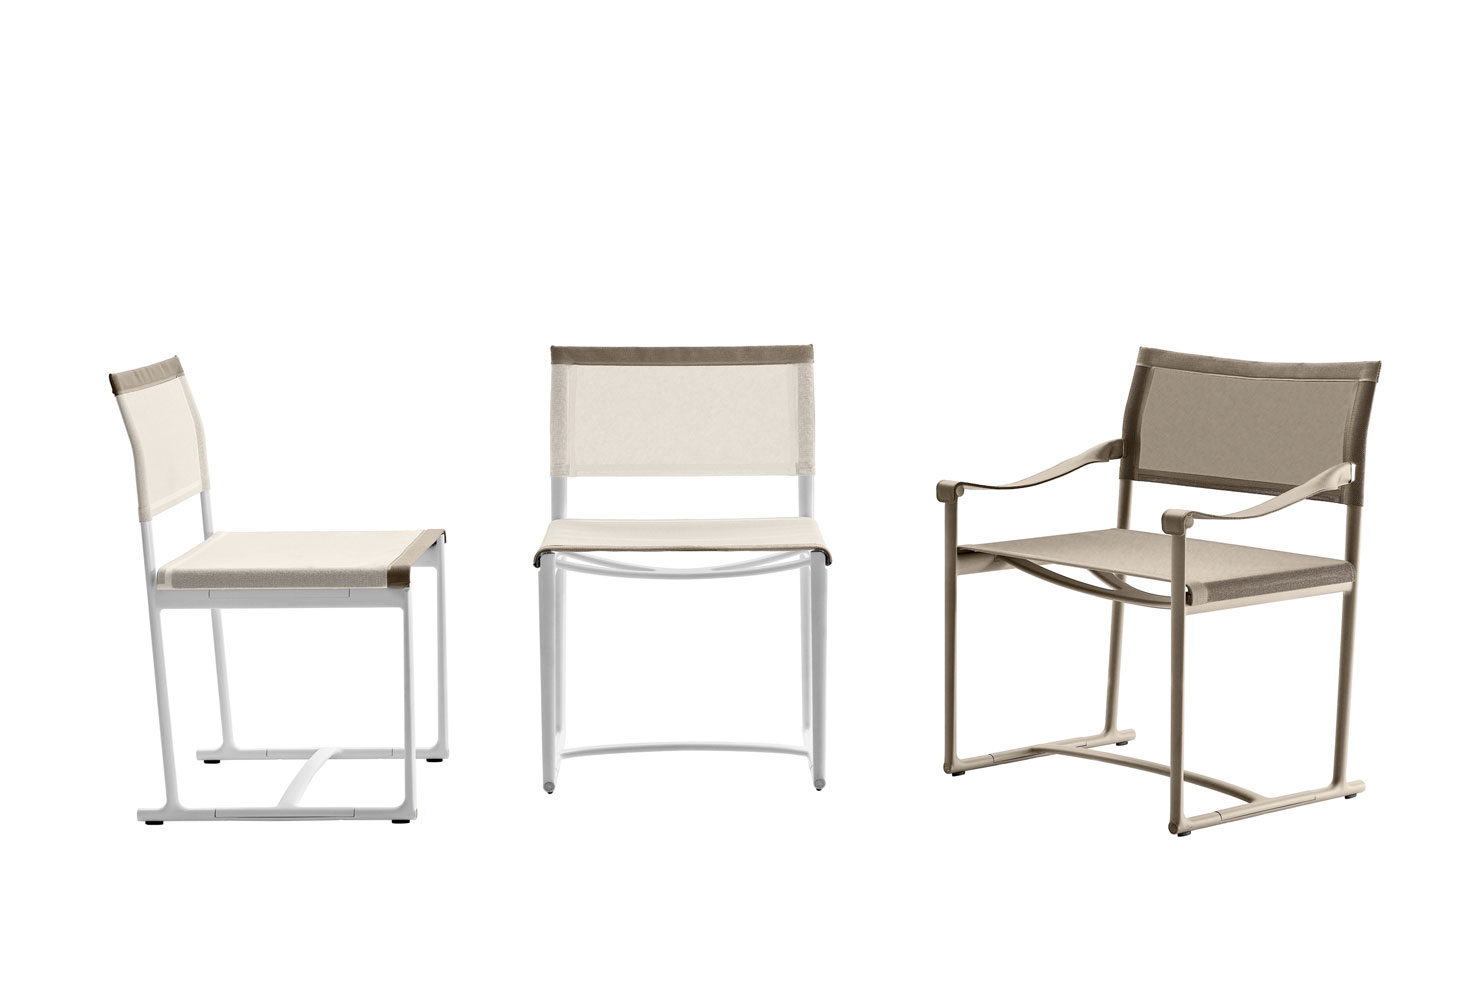 Mirto outdoor b b italia download bim objects chairs for Outdoor furniture revit